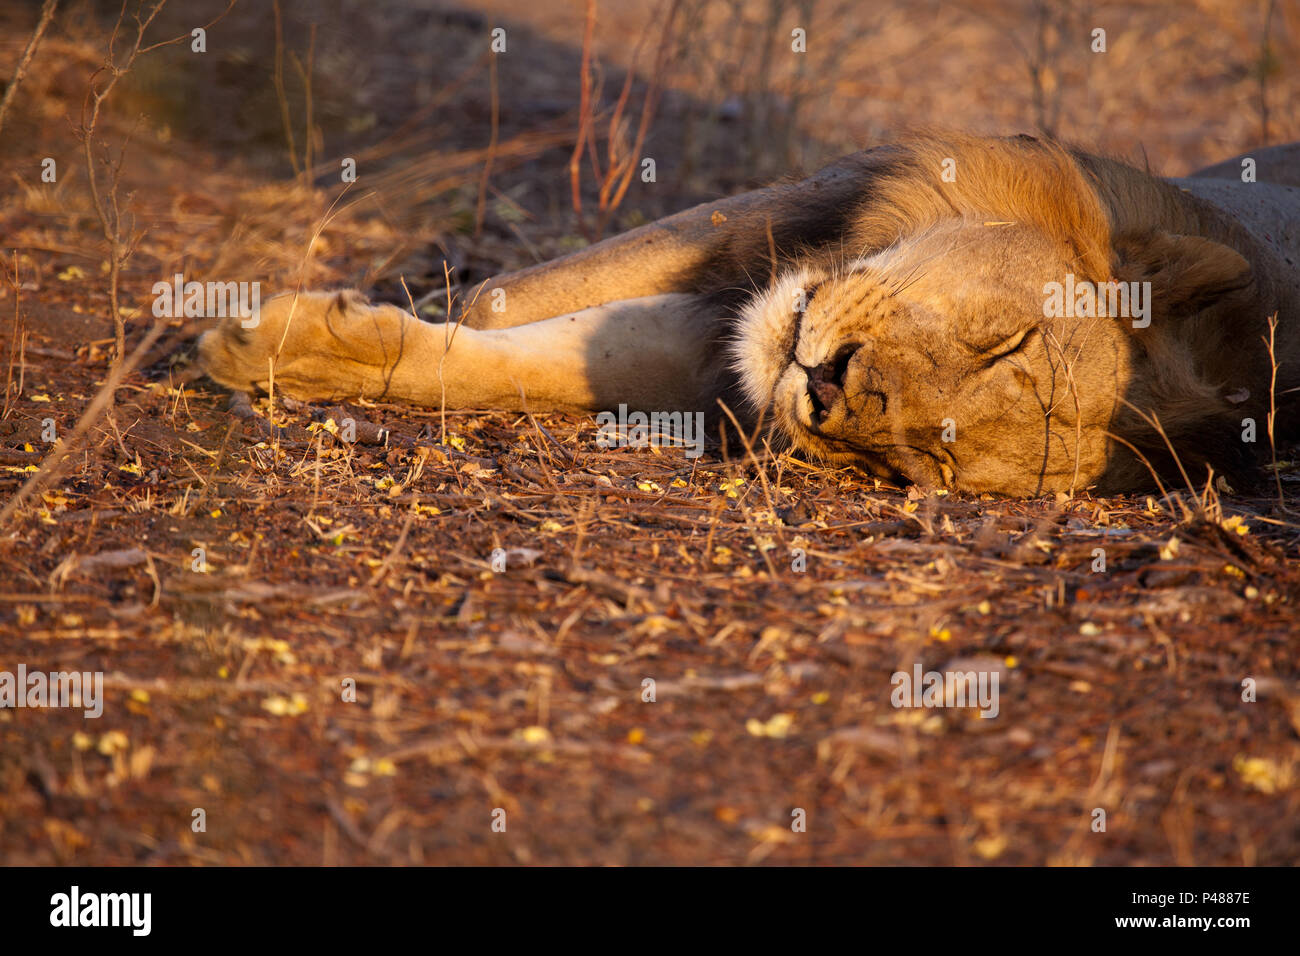 A young male lion snoozes at dawn, Selous Game Reserve - Stock Image